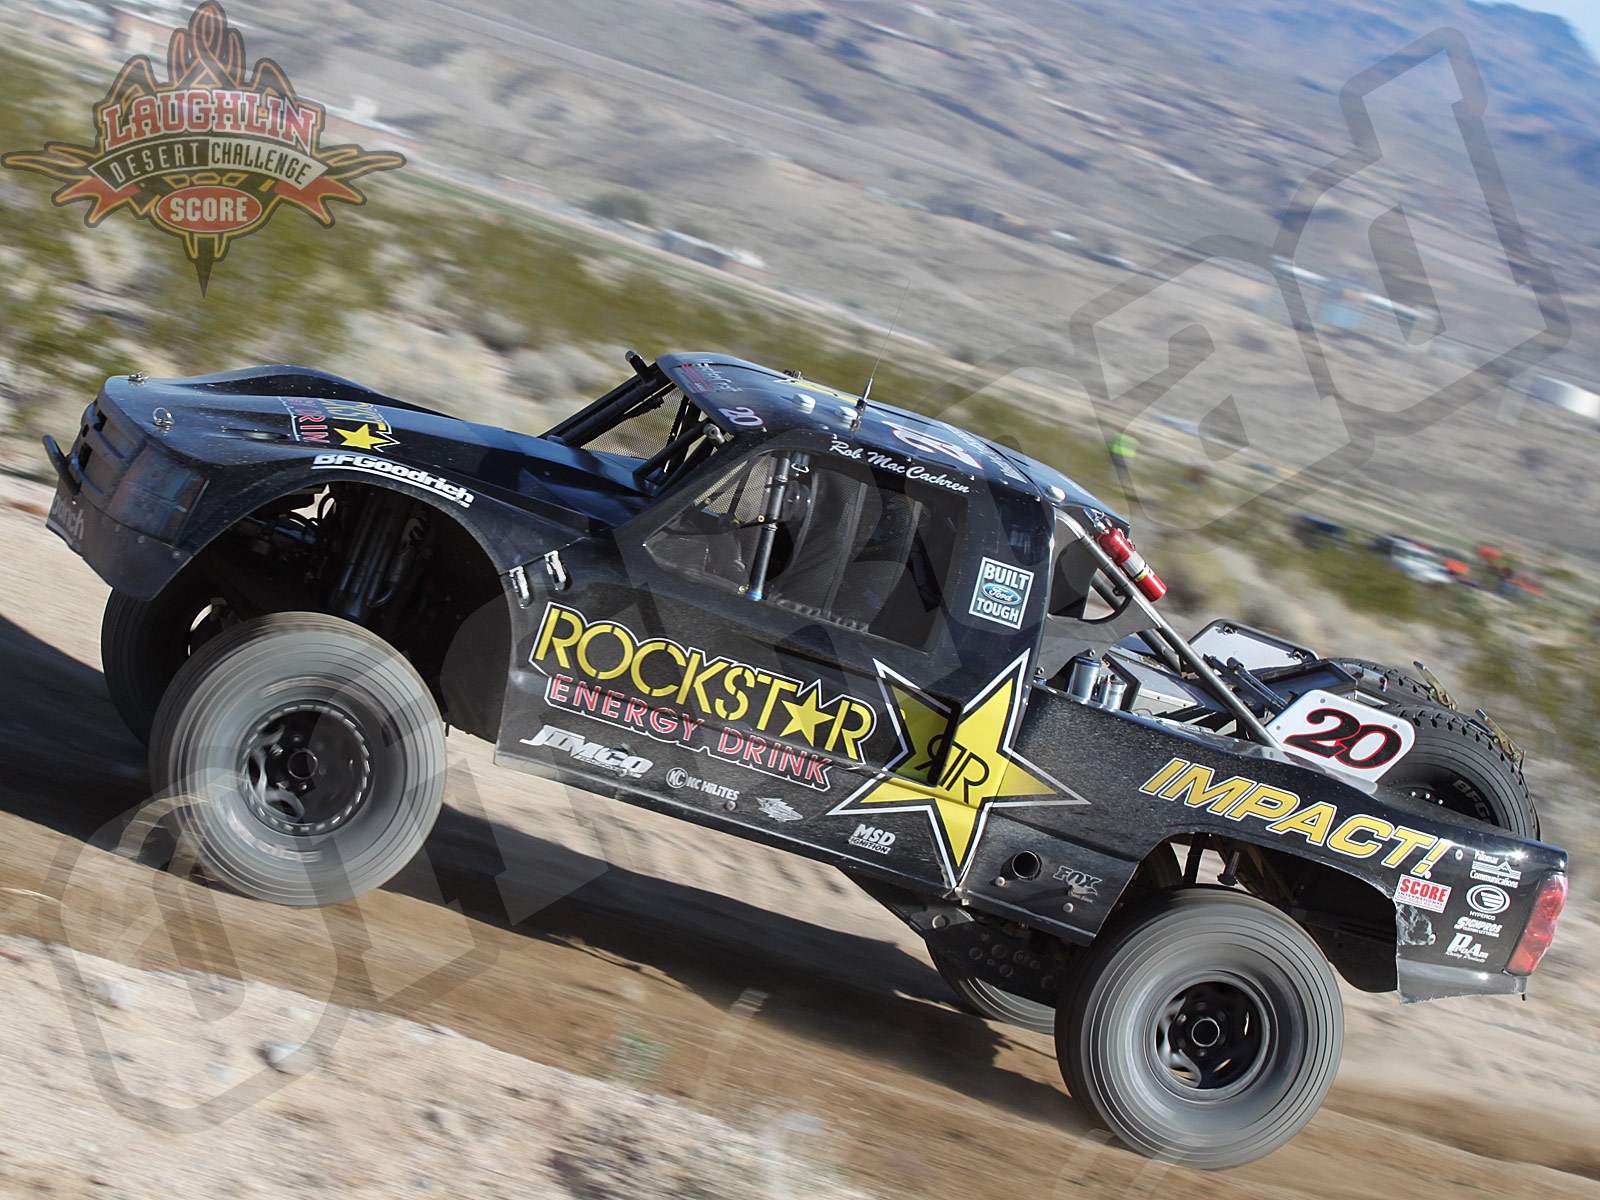 030311or 6887+2011 score laughlin desert challenge+trophy trucks sunday